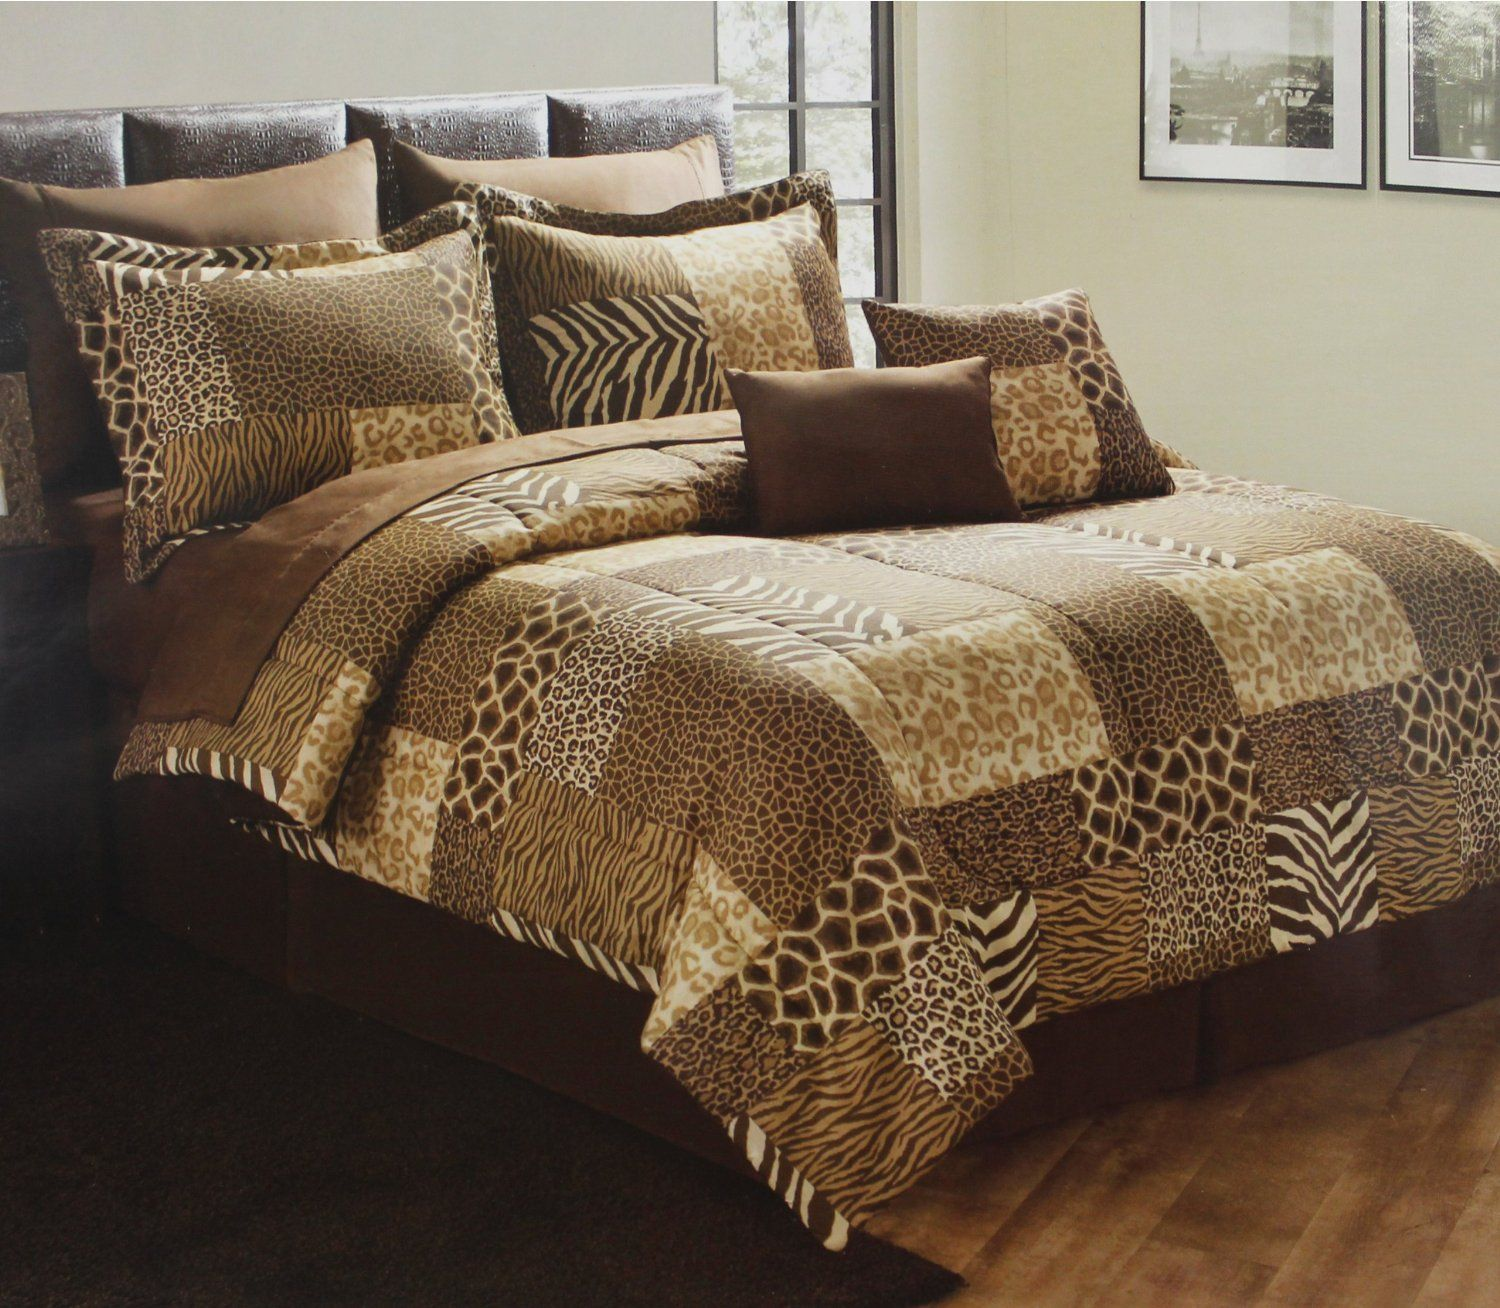 Bed sheets designs patchwork - Cheetah Quilt Designs Leopard Patchwork Print Bedding Comforter Set